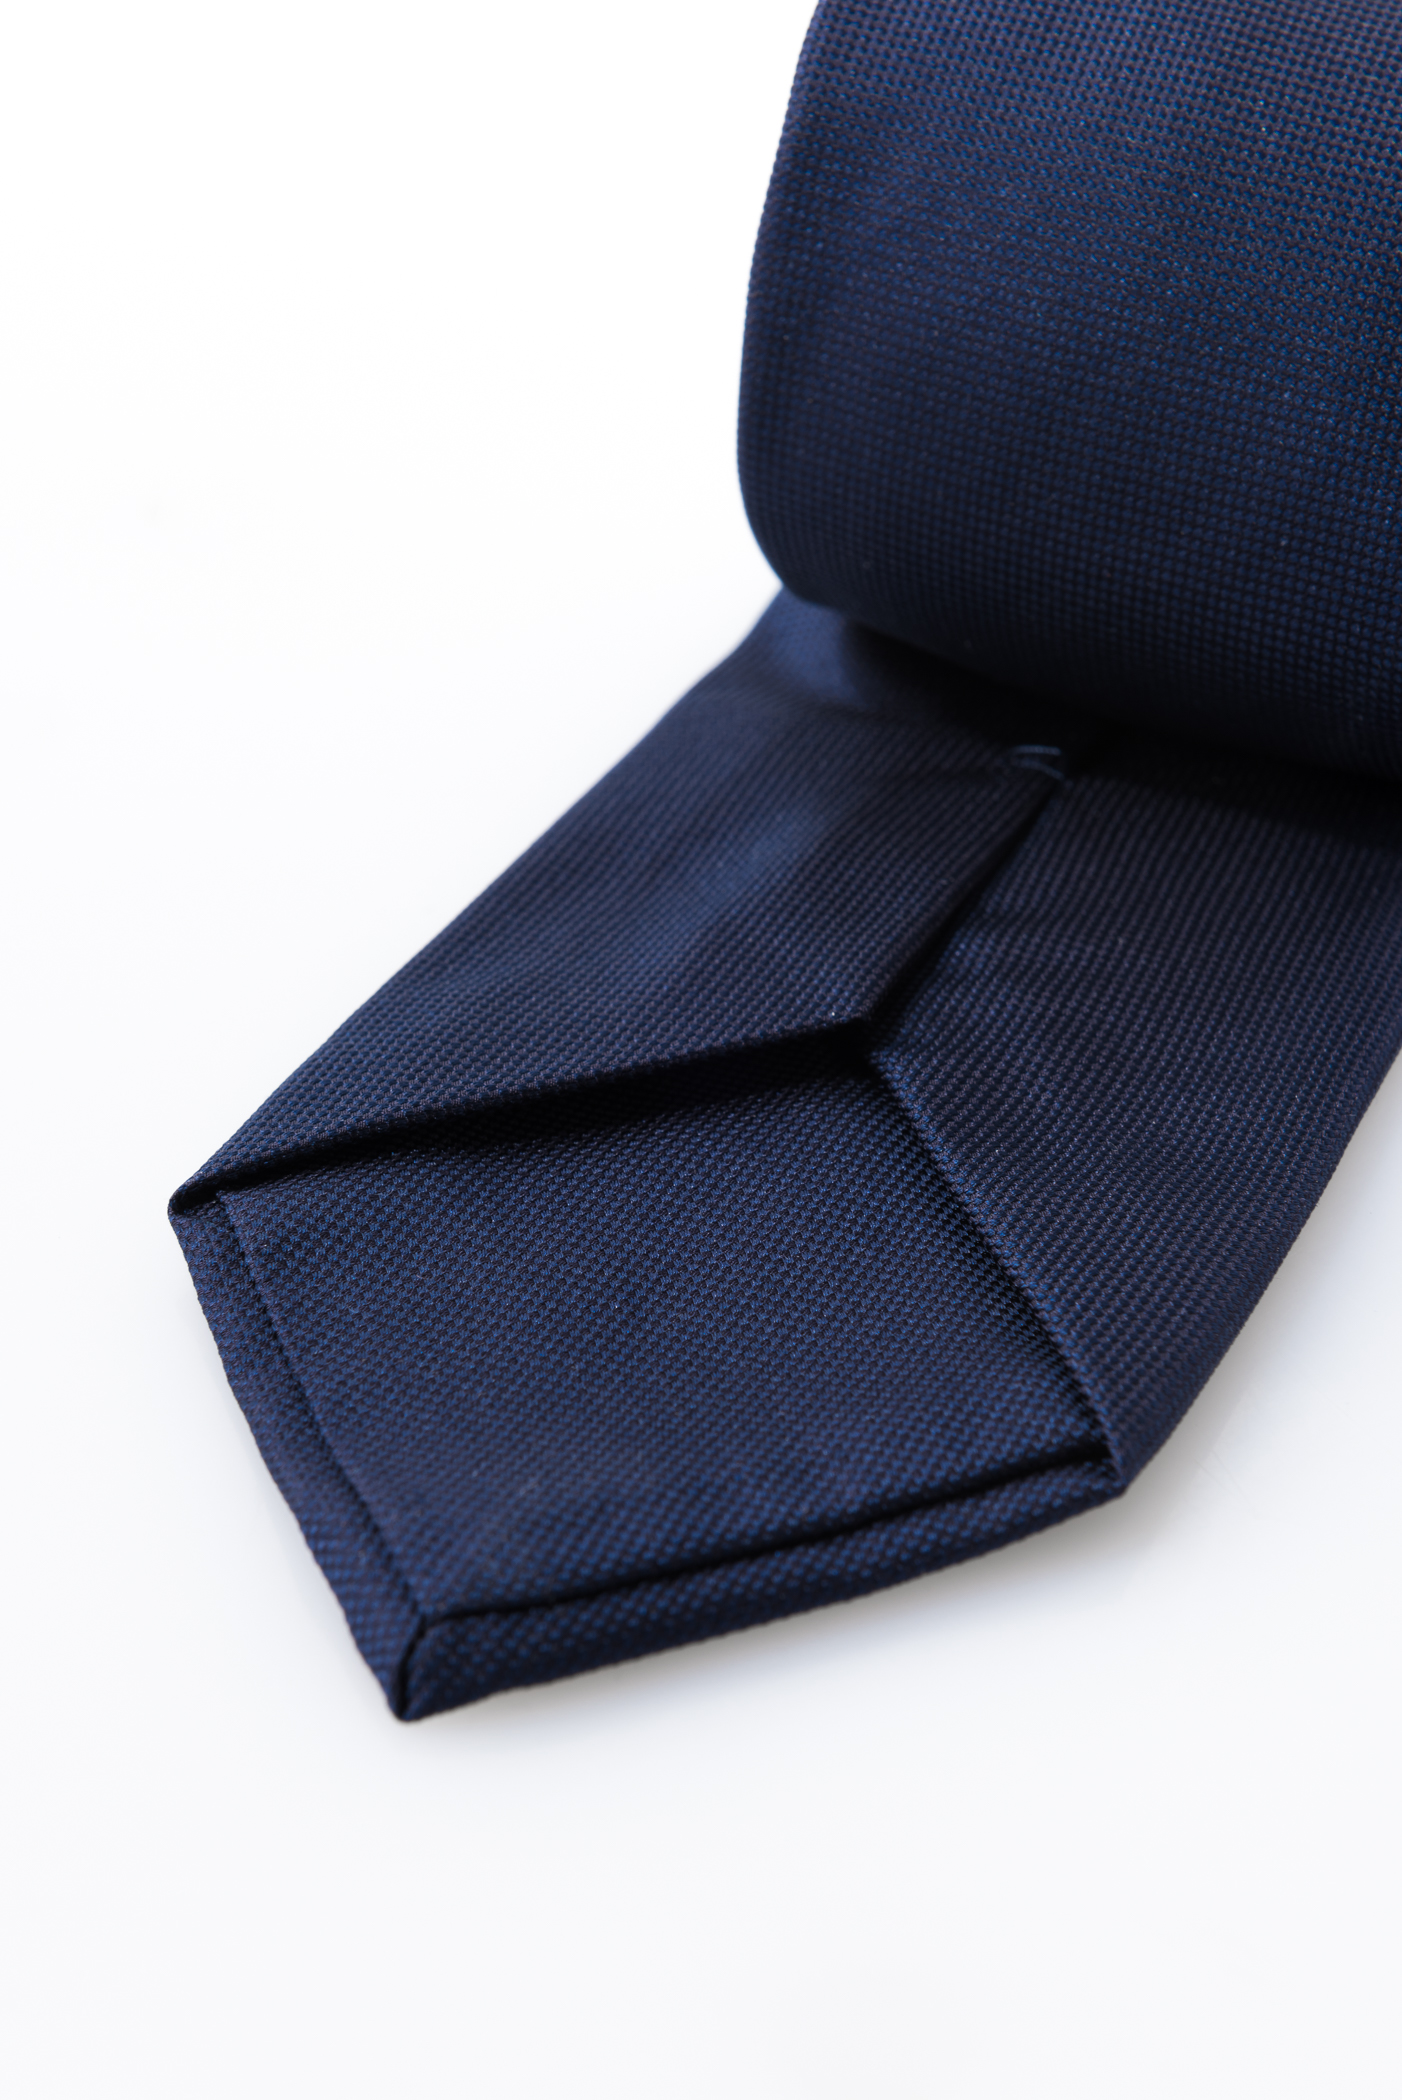 Lined Tie – Gianni Blu – detail